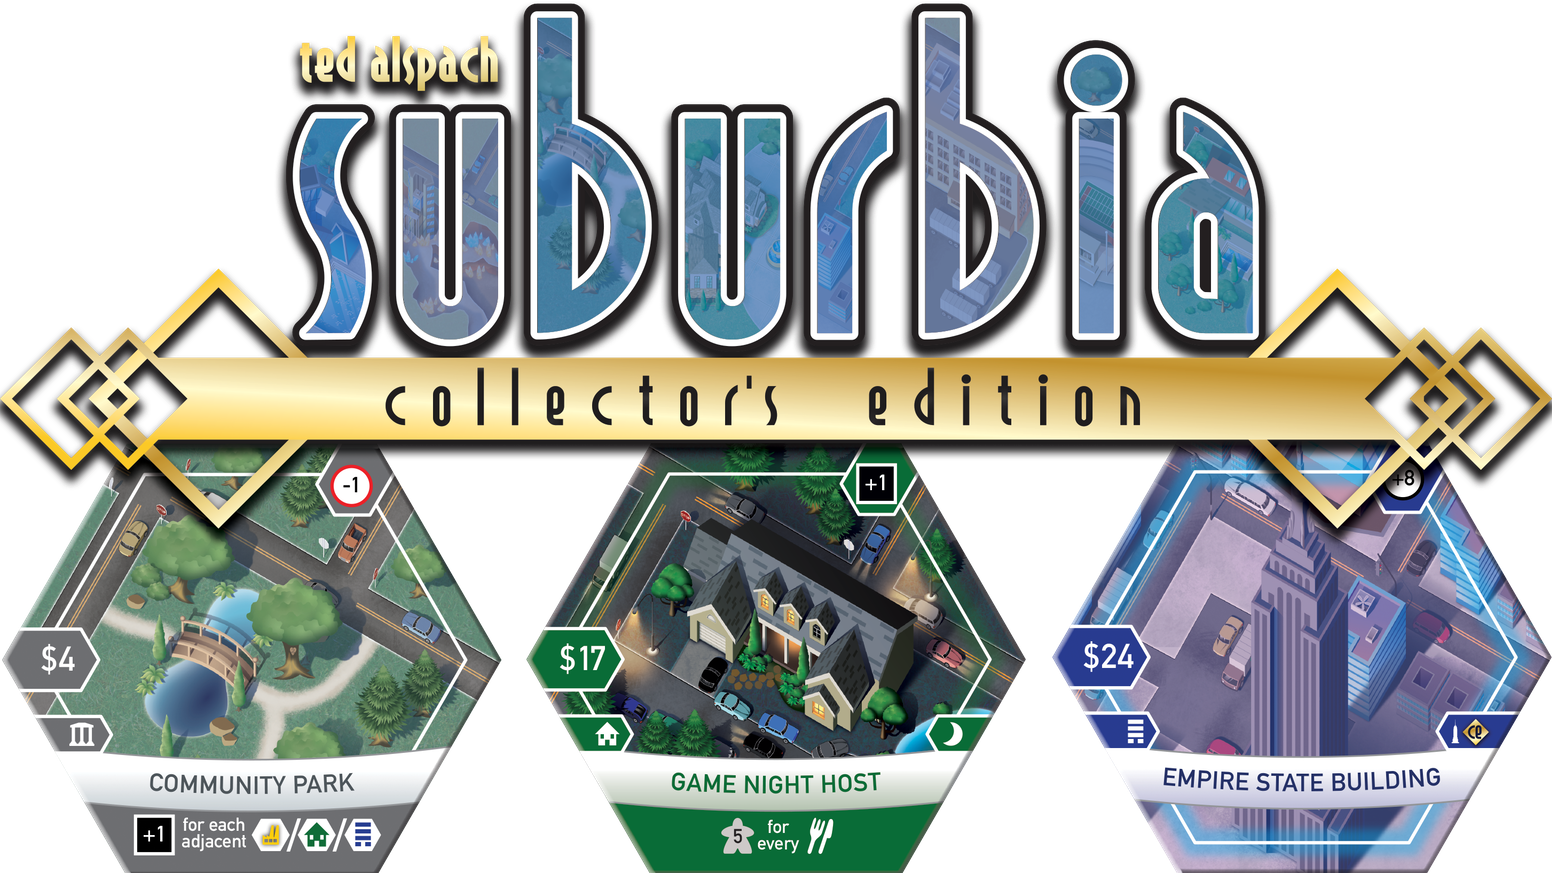 A special collector's edition of the city-building board game Suburbia with new art, premium components, and a new expansion.